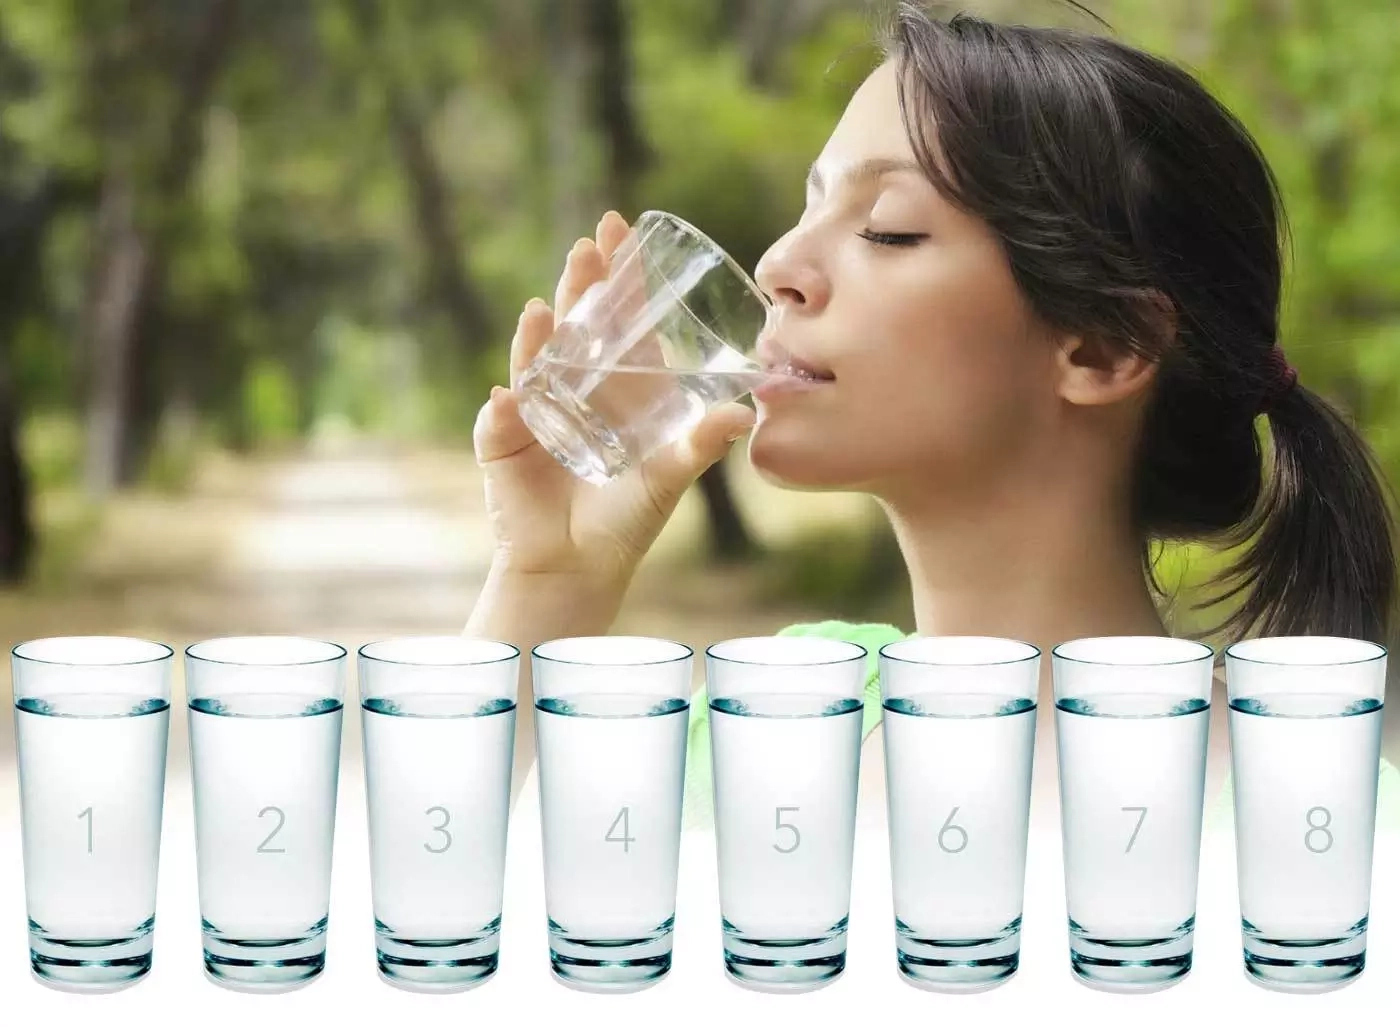 7 Importance of Water in the Body